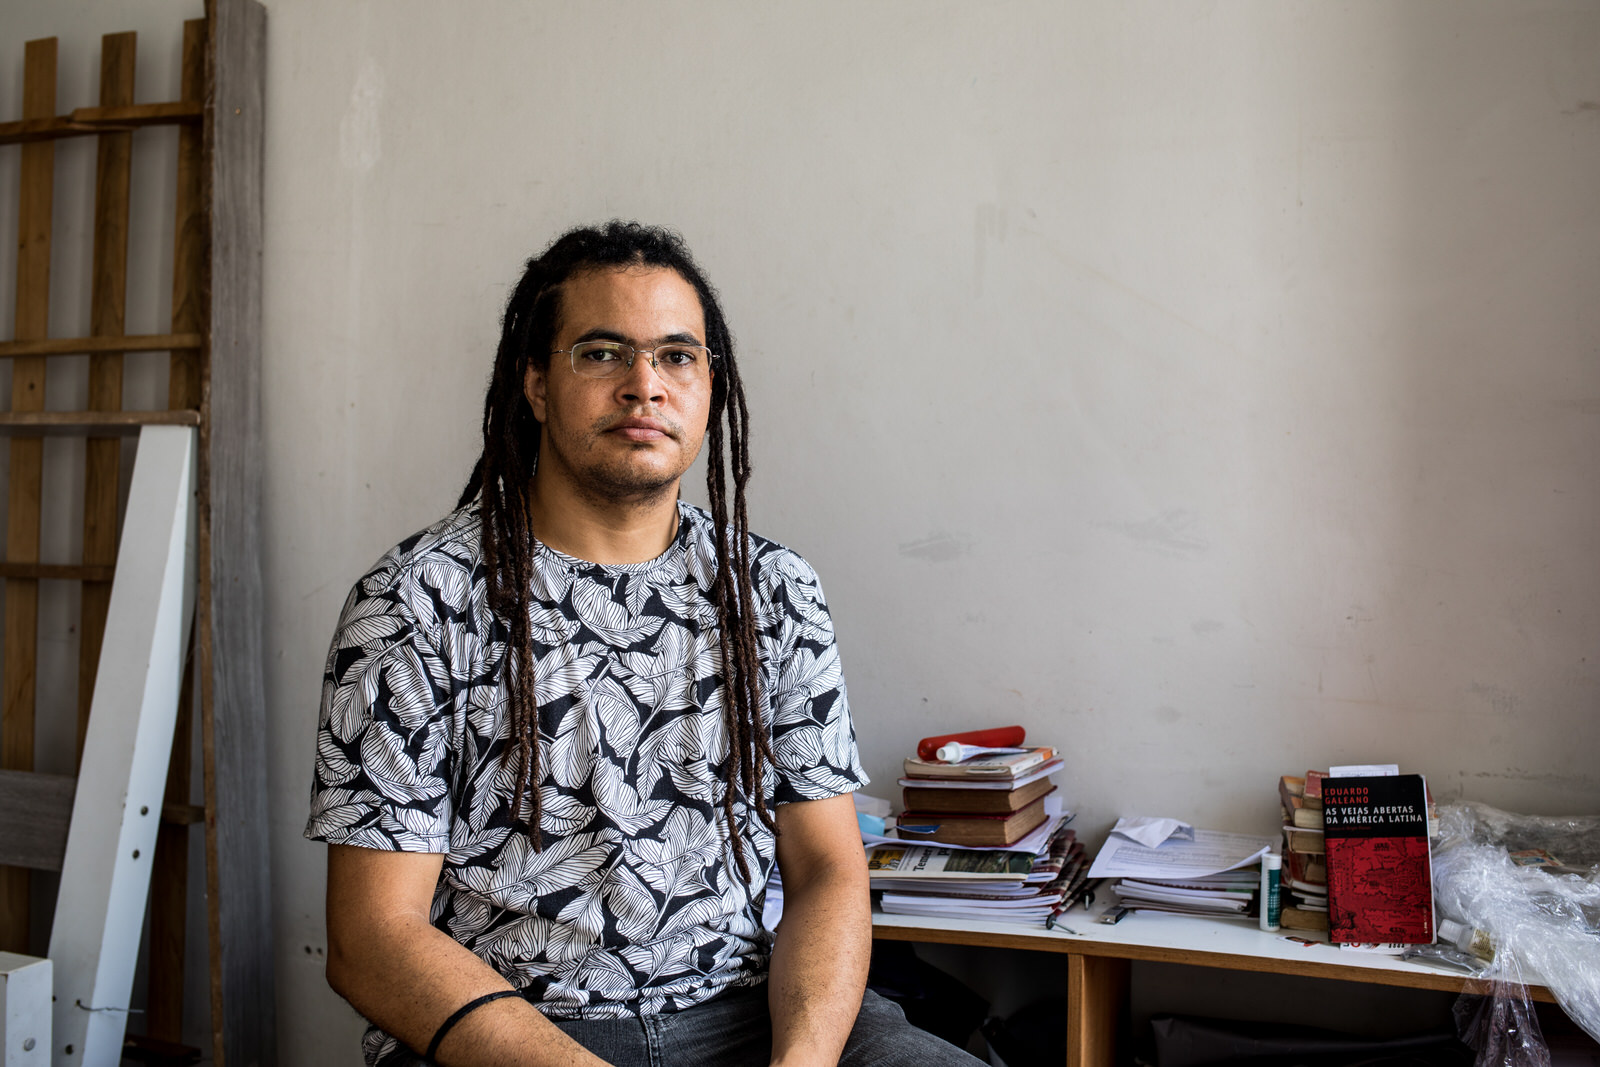 Wagner Moreira a leader from the MSTB social movement (Movimento Sem Teto da Bahia -  Homeless Movement of Bahia ) in his room in the occupation.